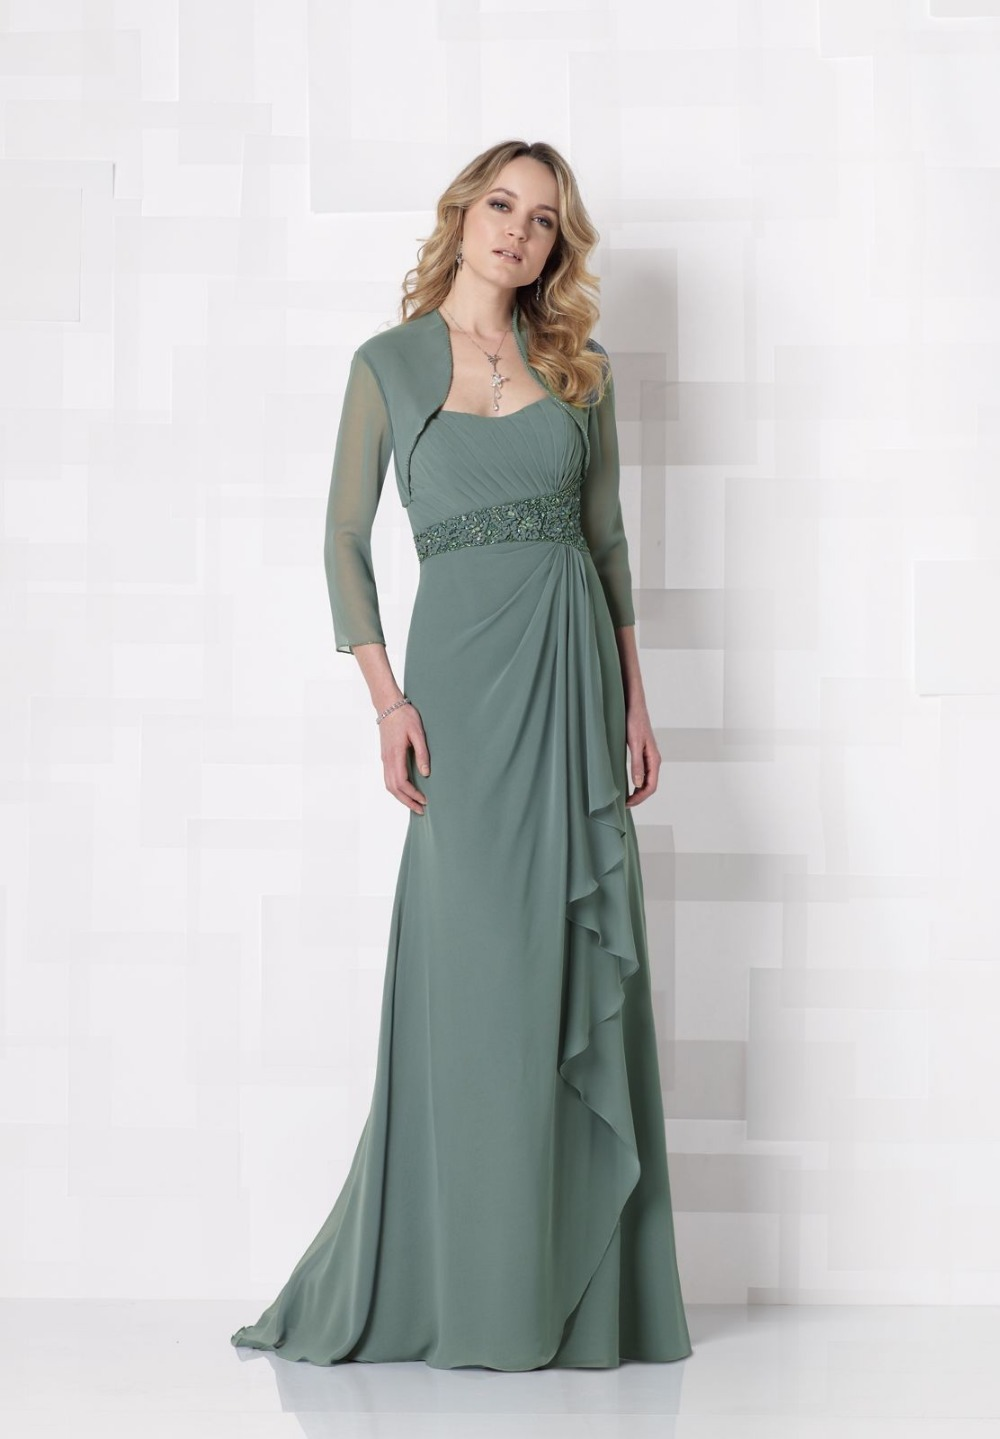 J0084 free jacket green chiffon draped waistband beading for Mother of the bride dresses for beach weddings